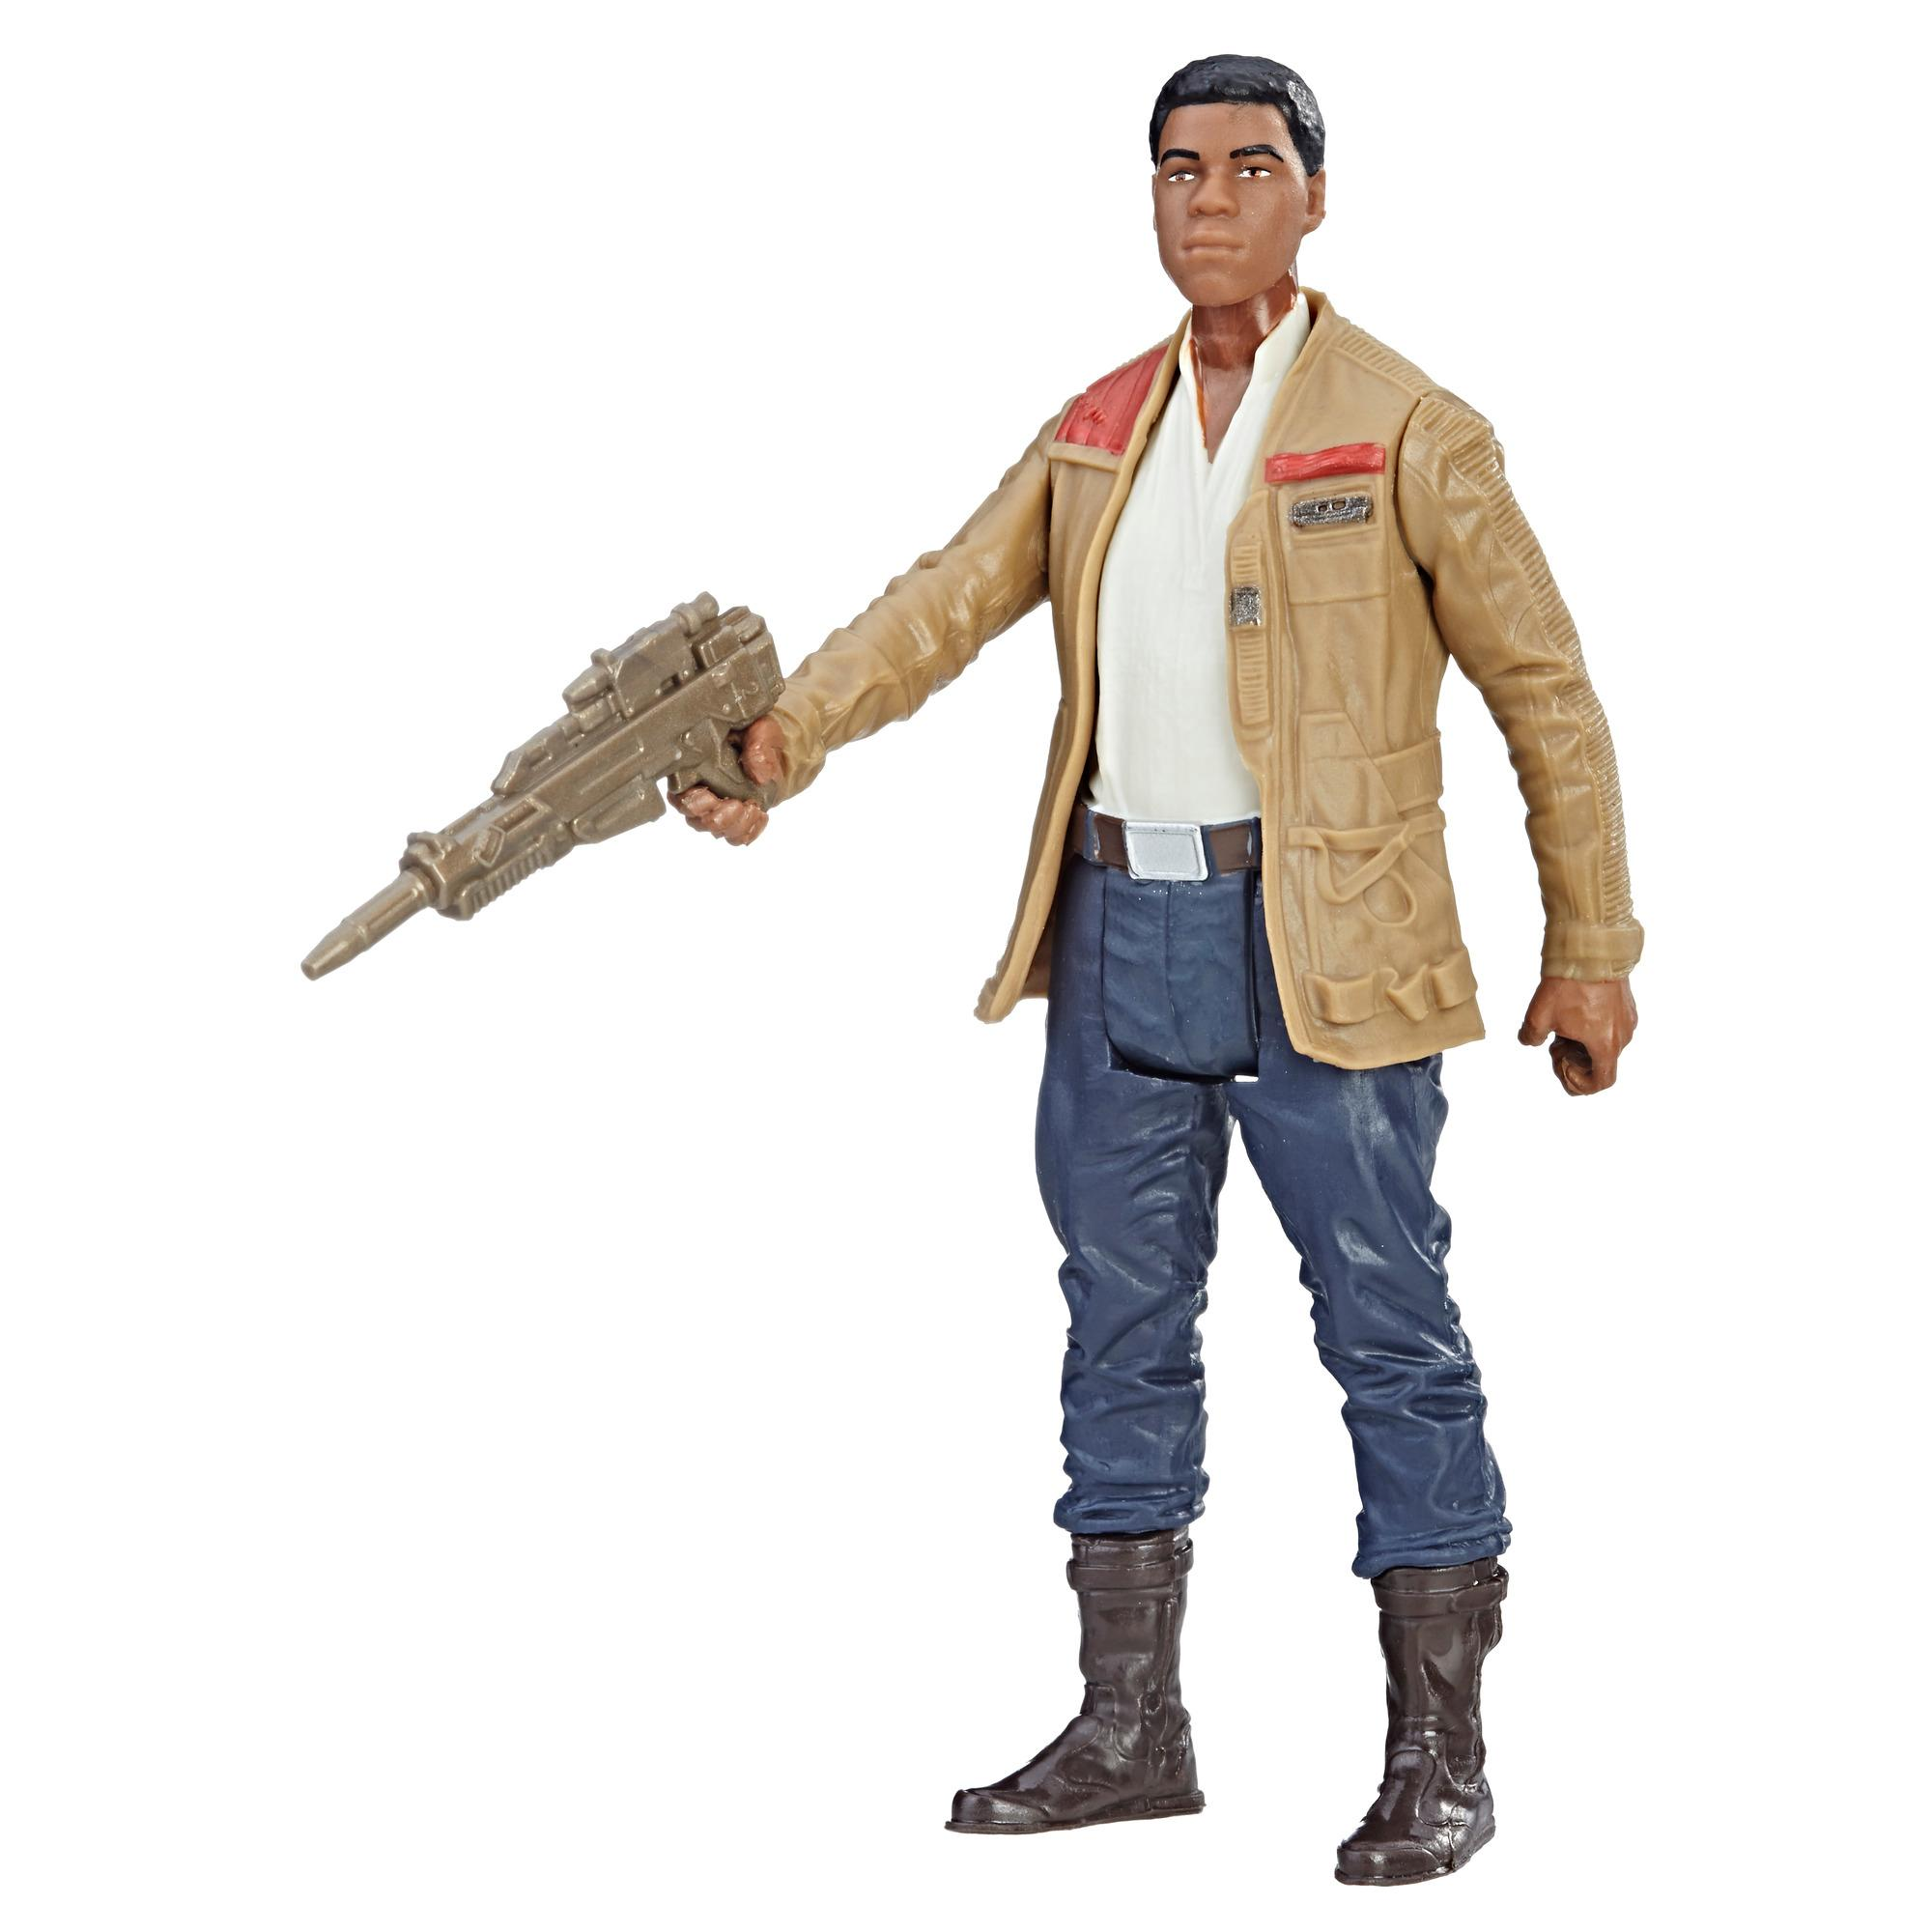 Star Wars Finn (Resistance Fighter) Force Link Figure